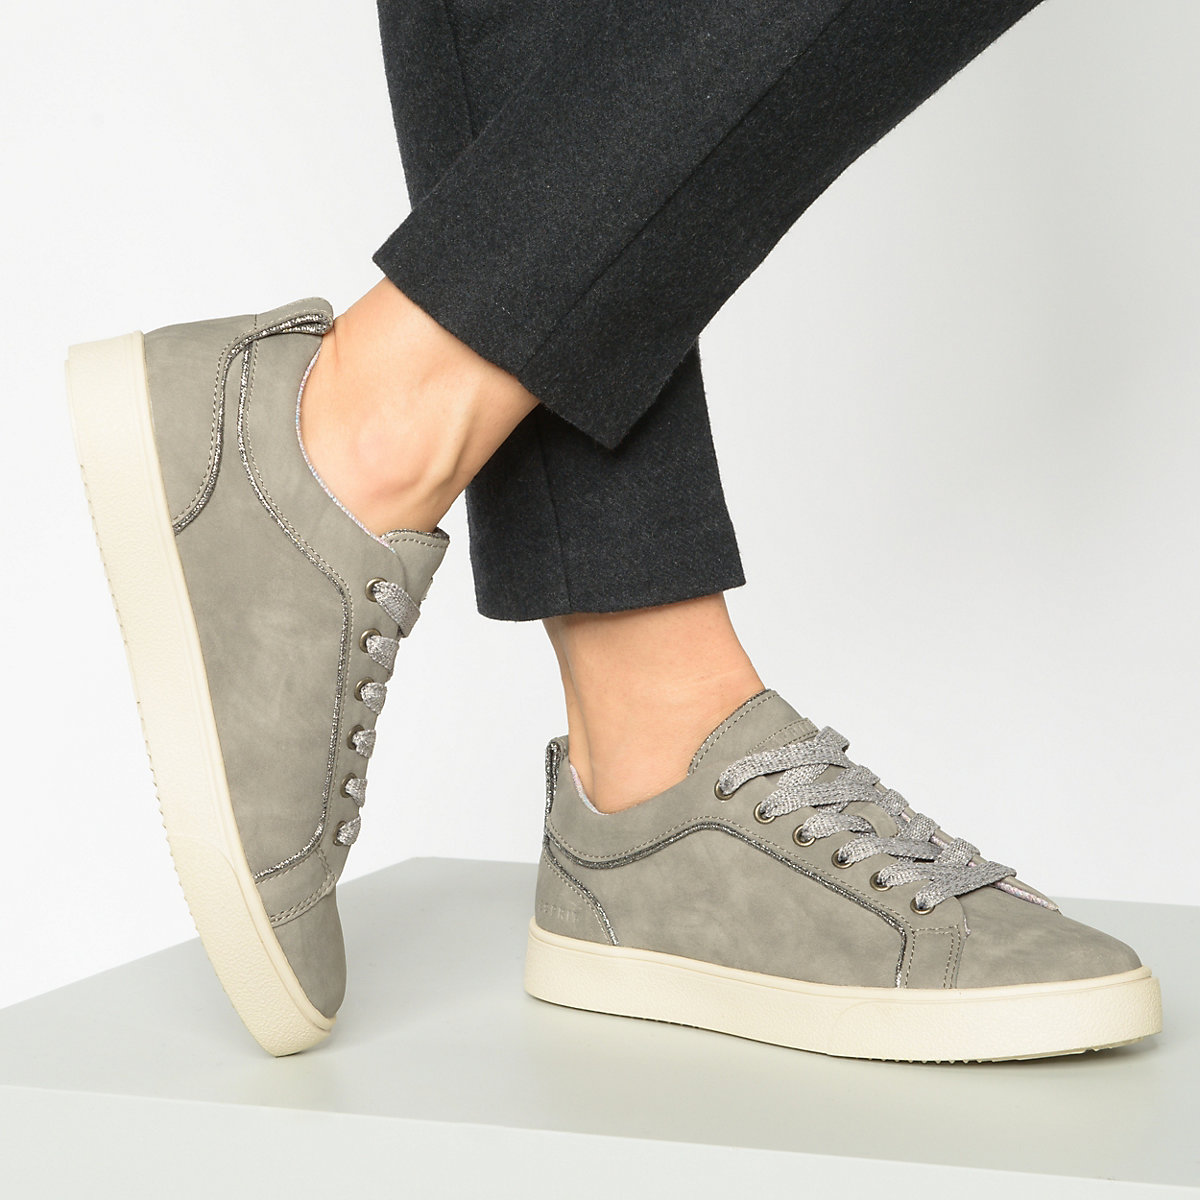 ESPRIT, Cherry  Sneakers Low, grau